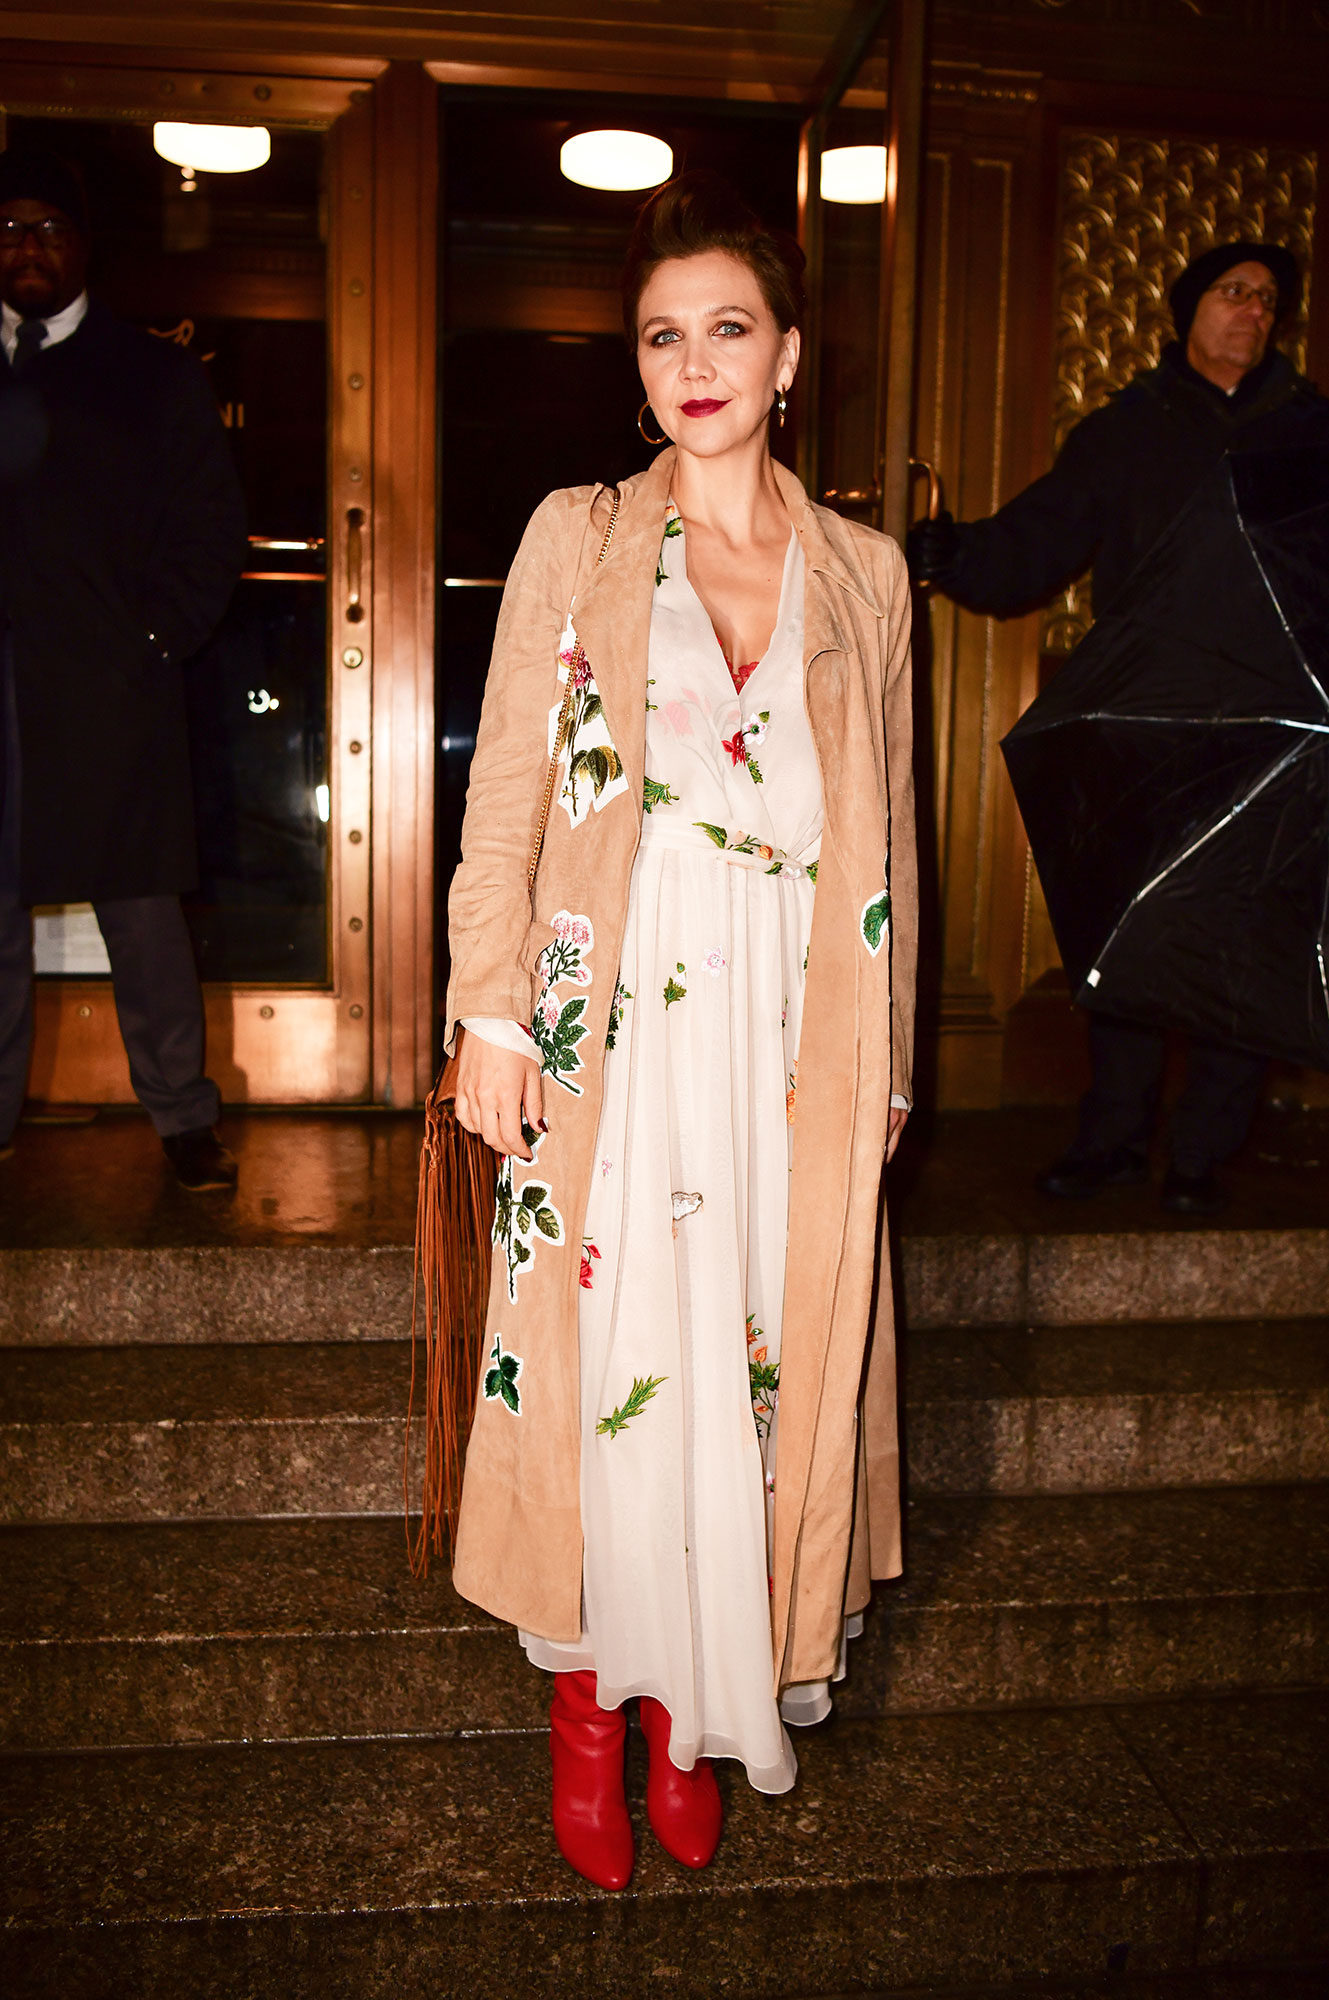 Maggie Gyllenhaal - Arriving to the Oscar de la Renta show on February 12, the actress was spotted in a spring-like ensemble with a silky white dress and large flower prints on her coat.